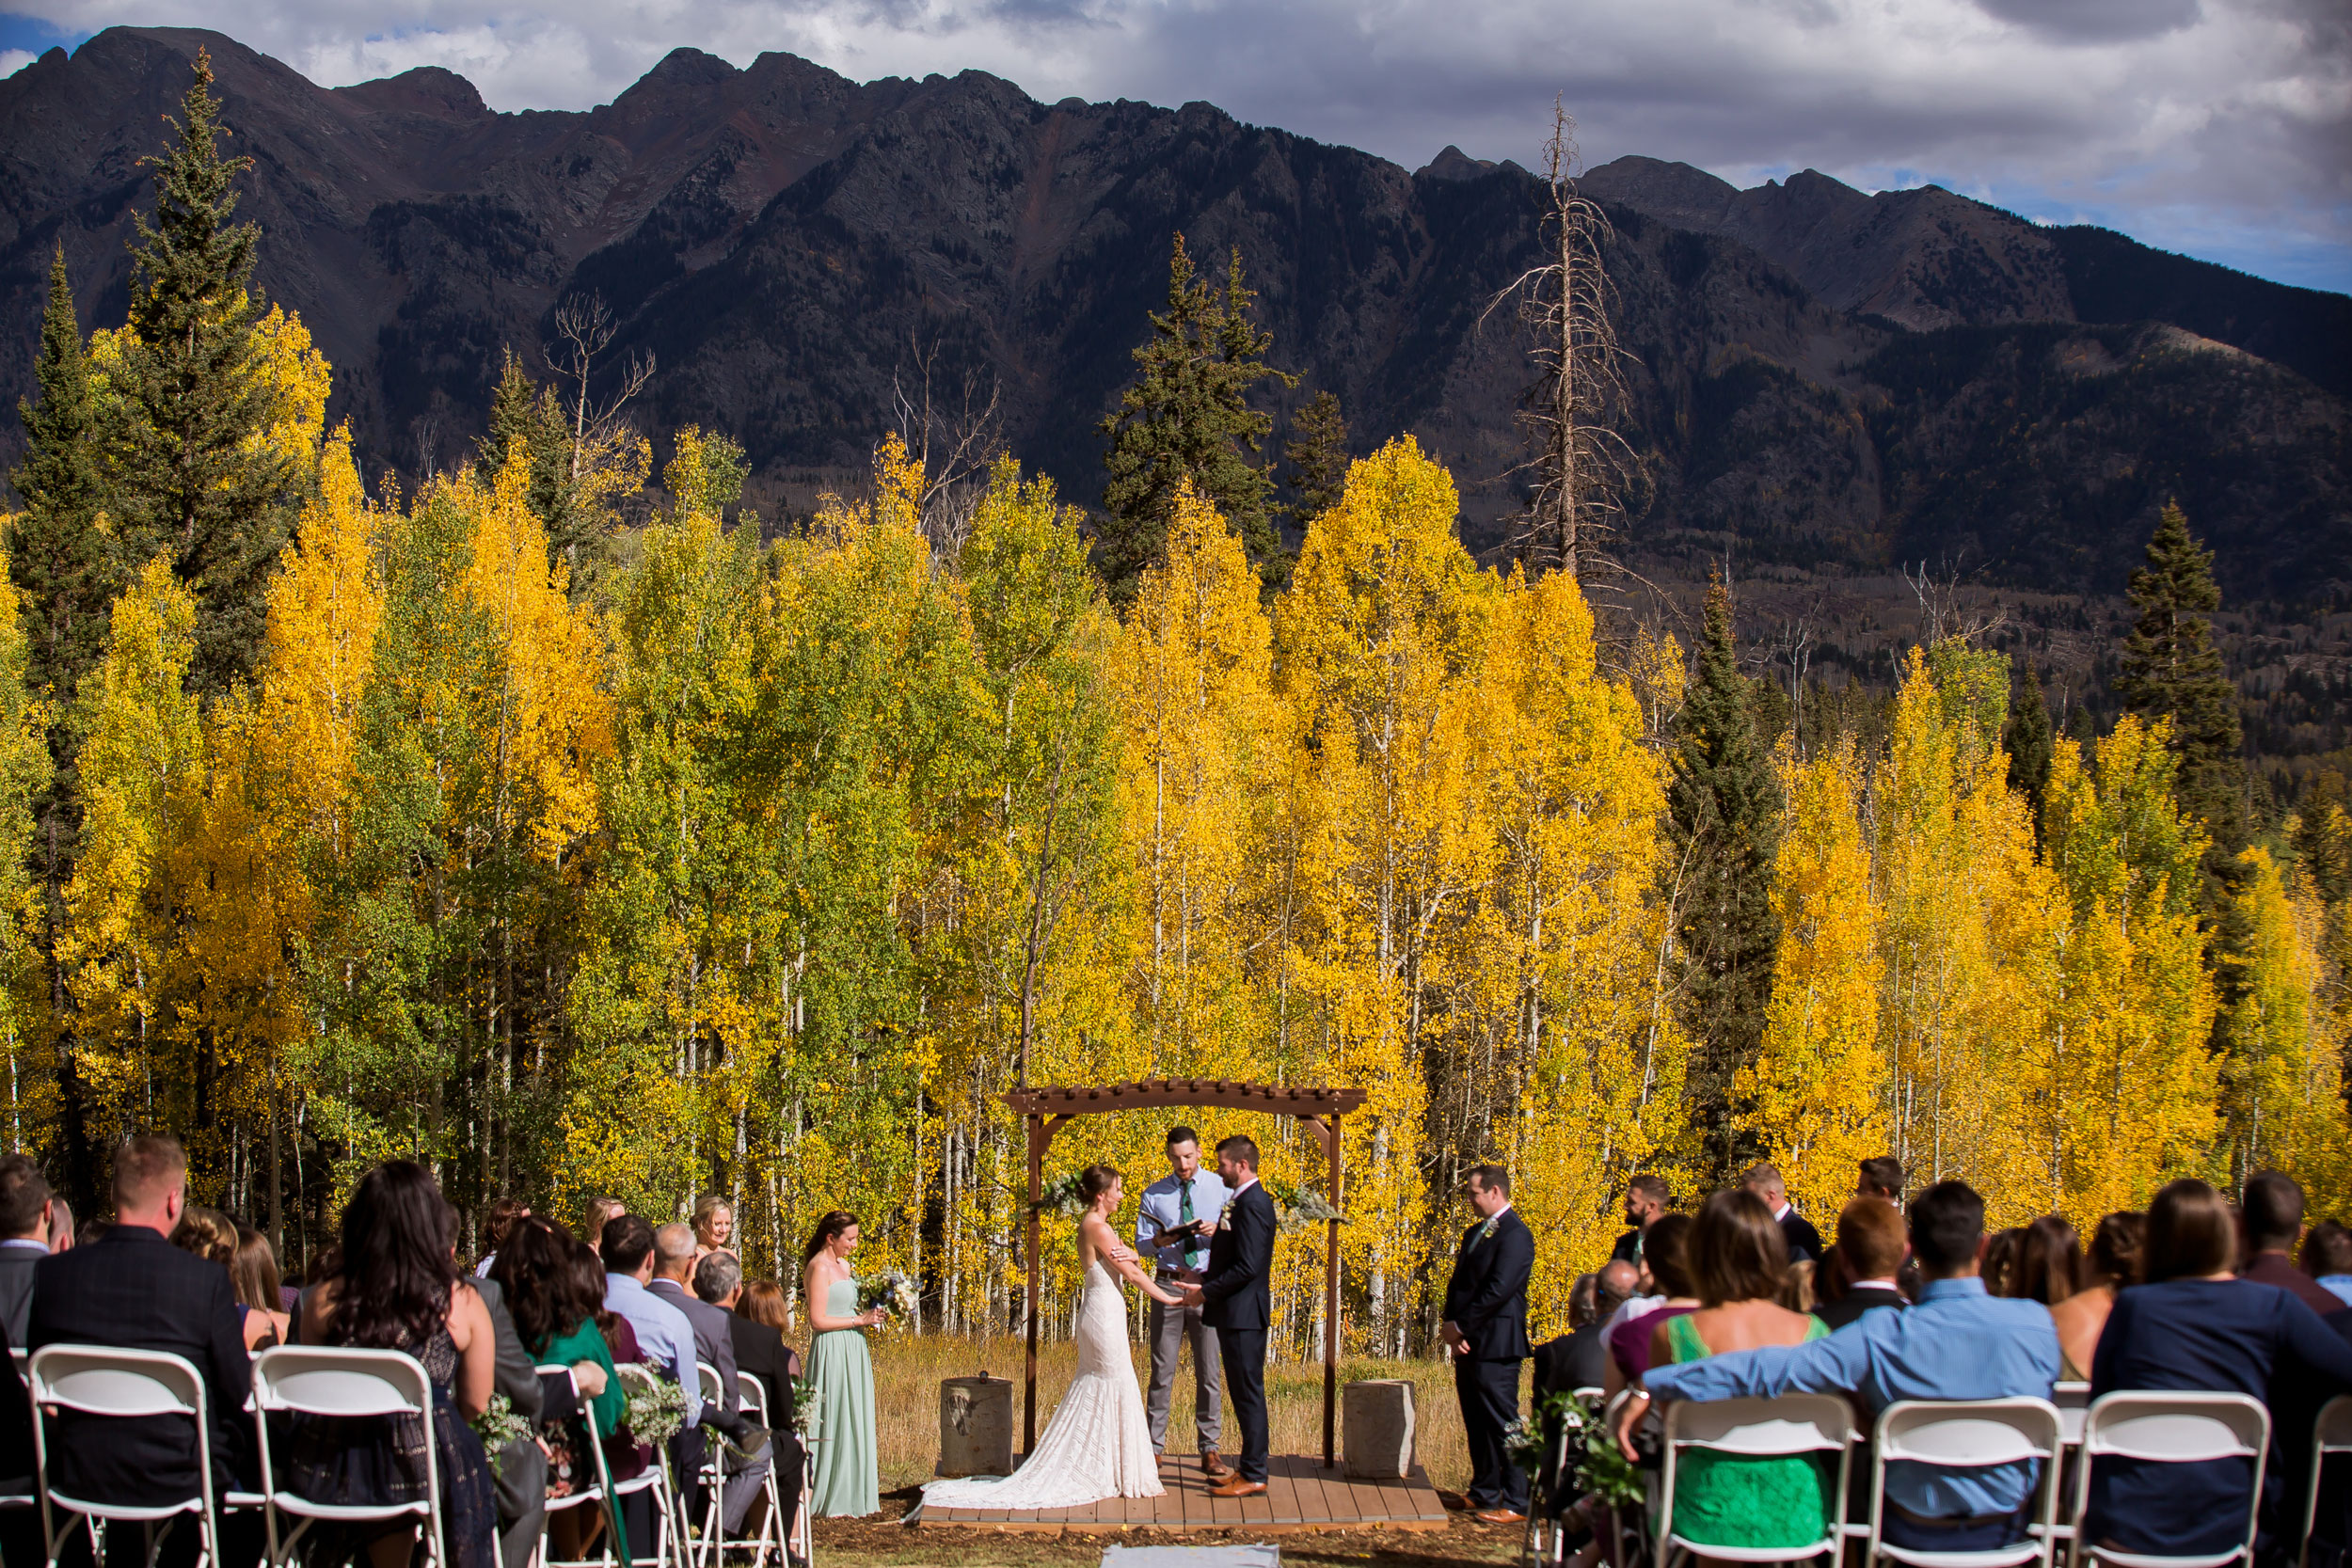 Liz & Jeff's Destination Wedding